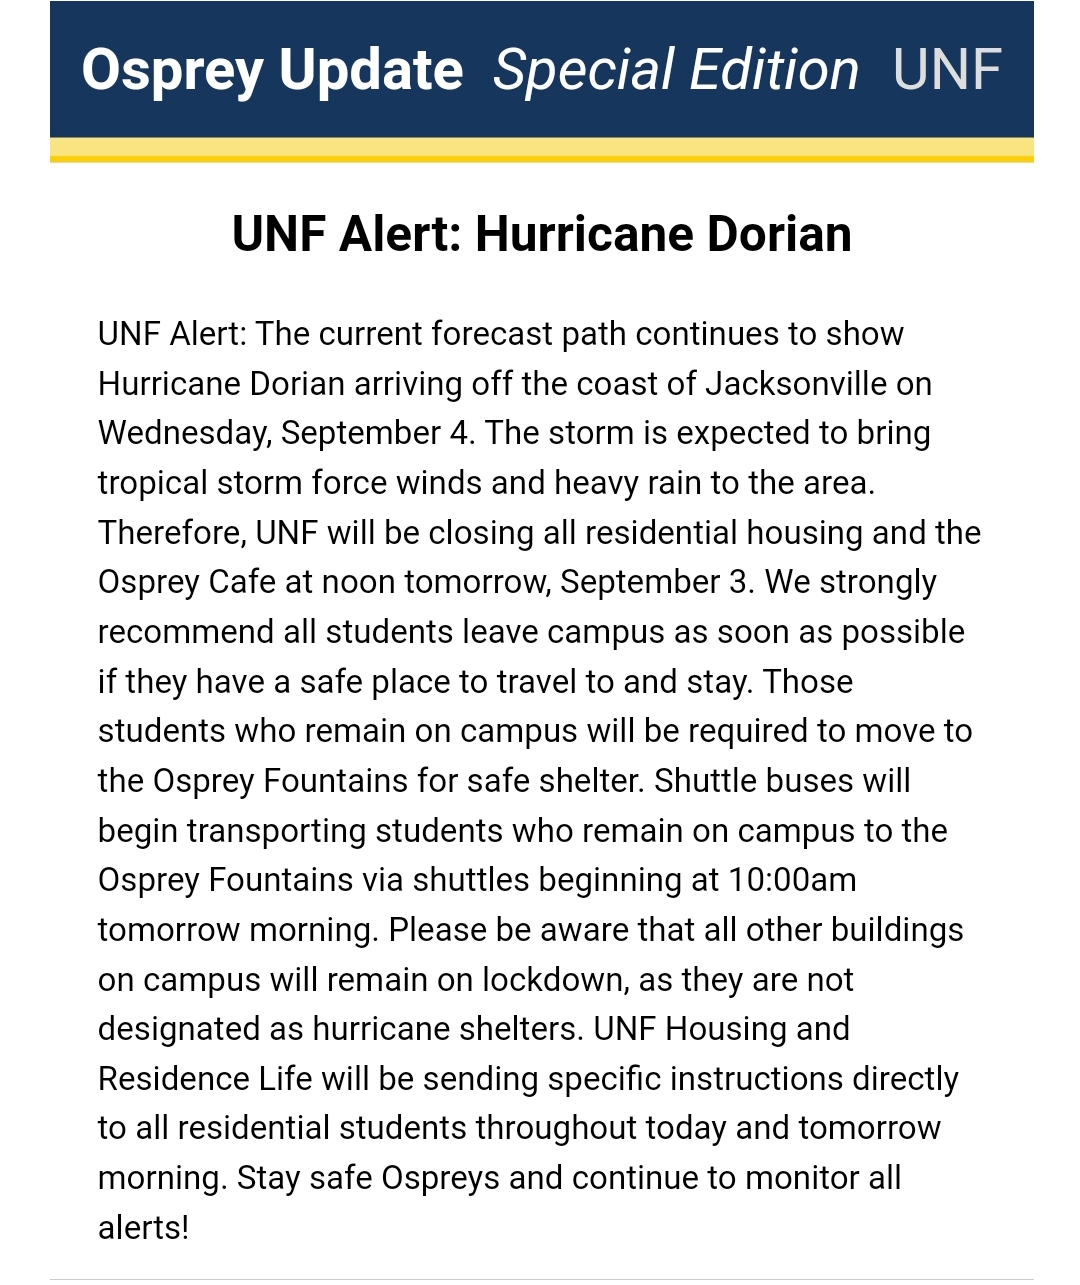 Tracking Dorian: UNF closes all residential housing, moves